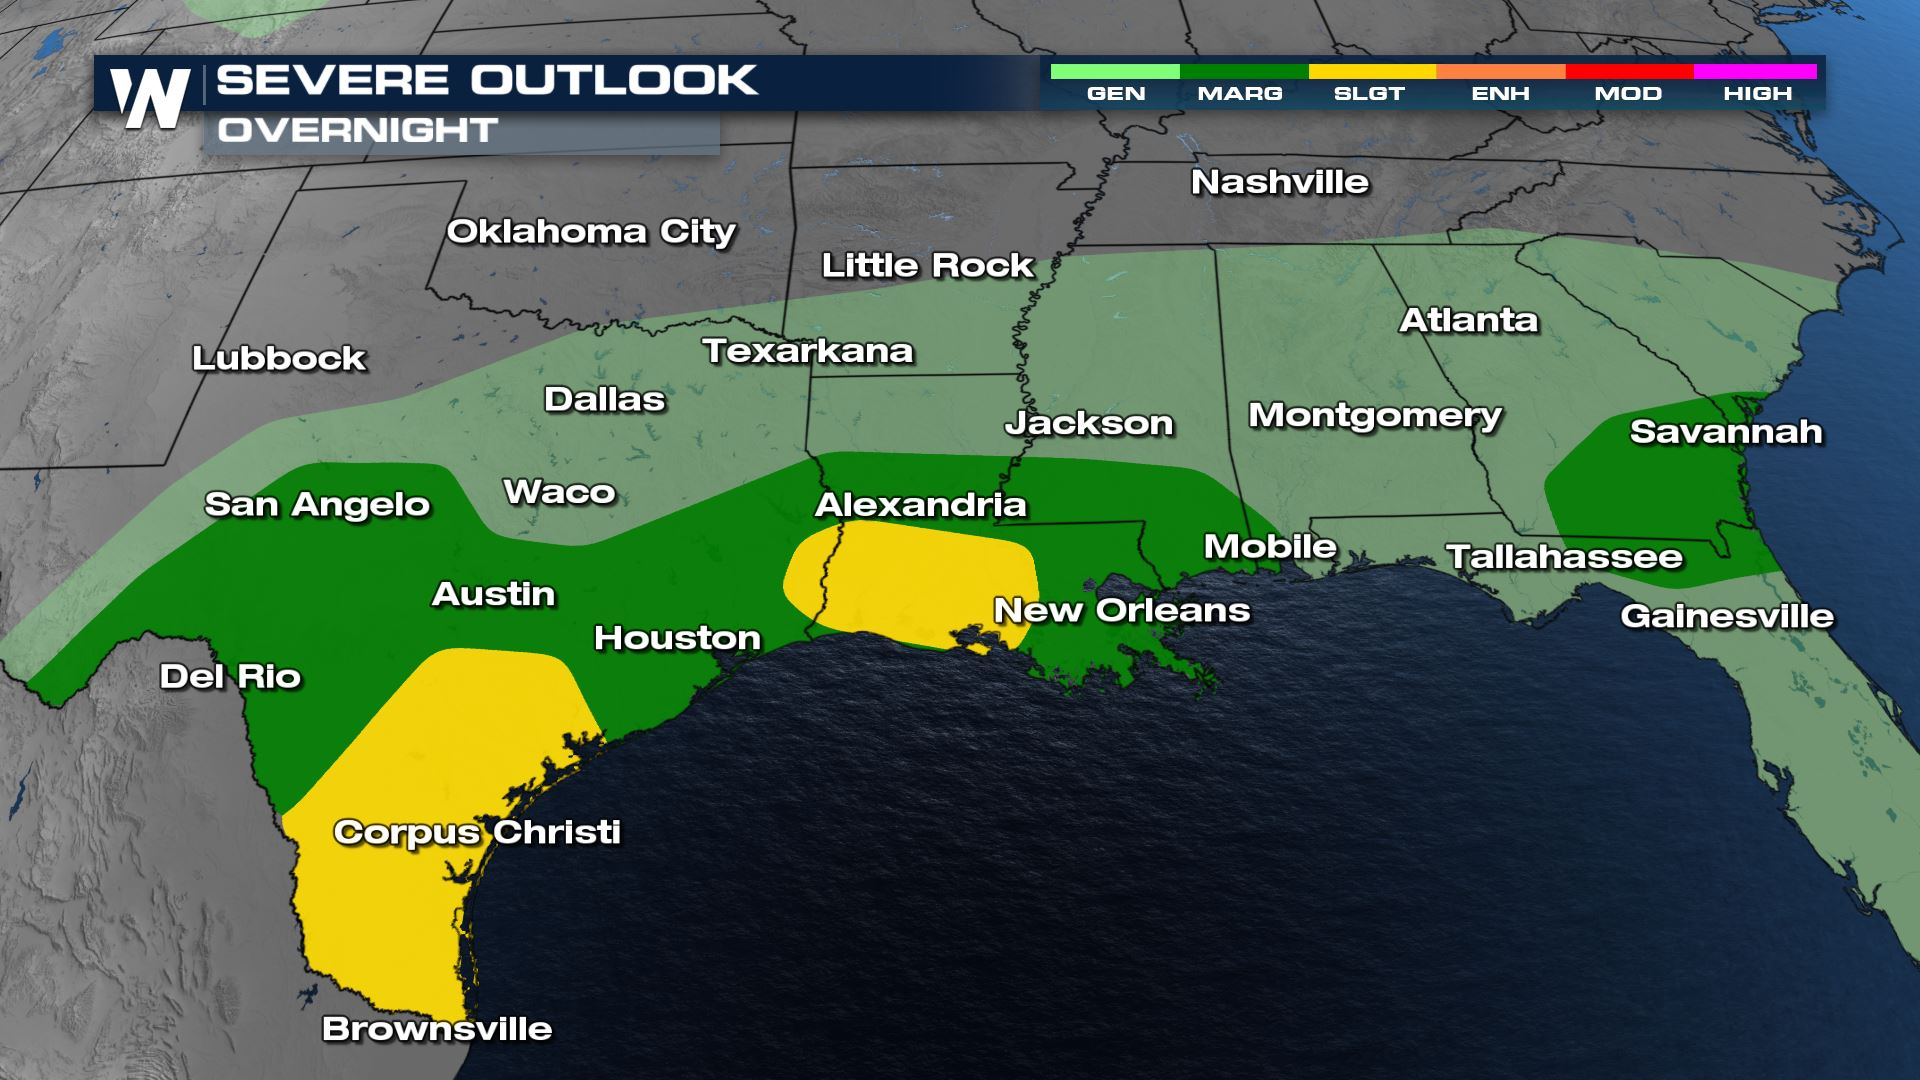 Overnight Storm Outlook For The Gulf States